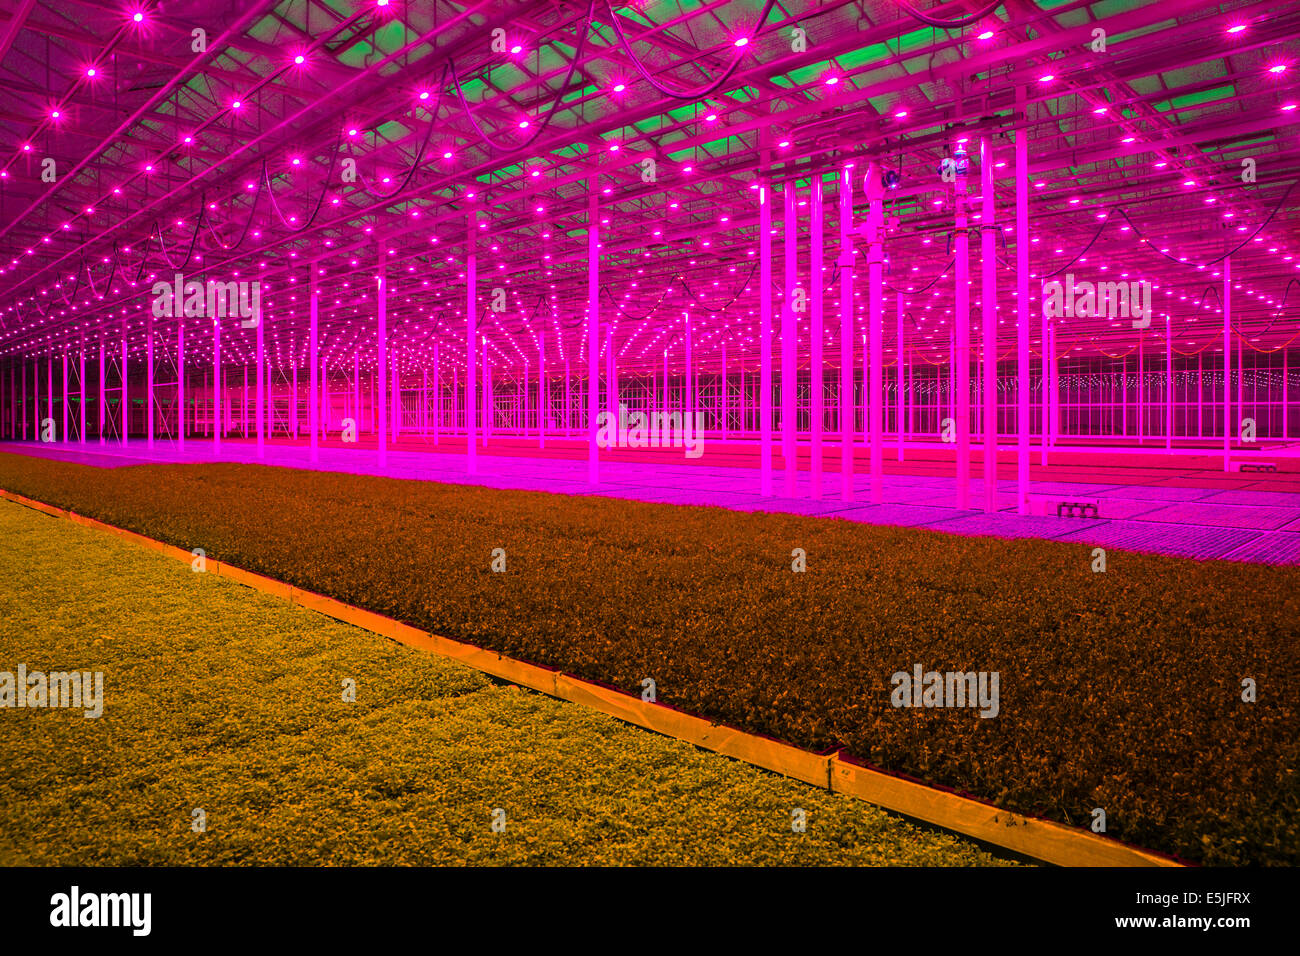 Netherlands monster red led lamps in the koppert cress greenhouses netherlands monster red led lamps in the koppert cress greenhouses arubaitofo Choice Image